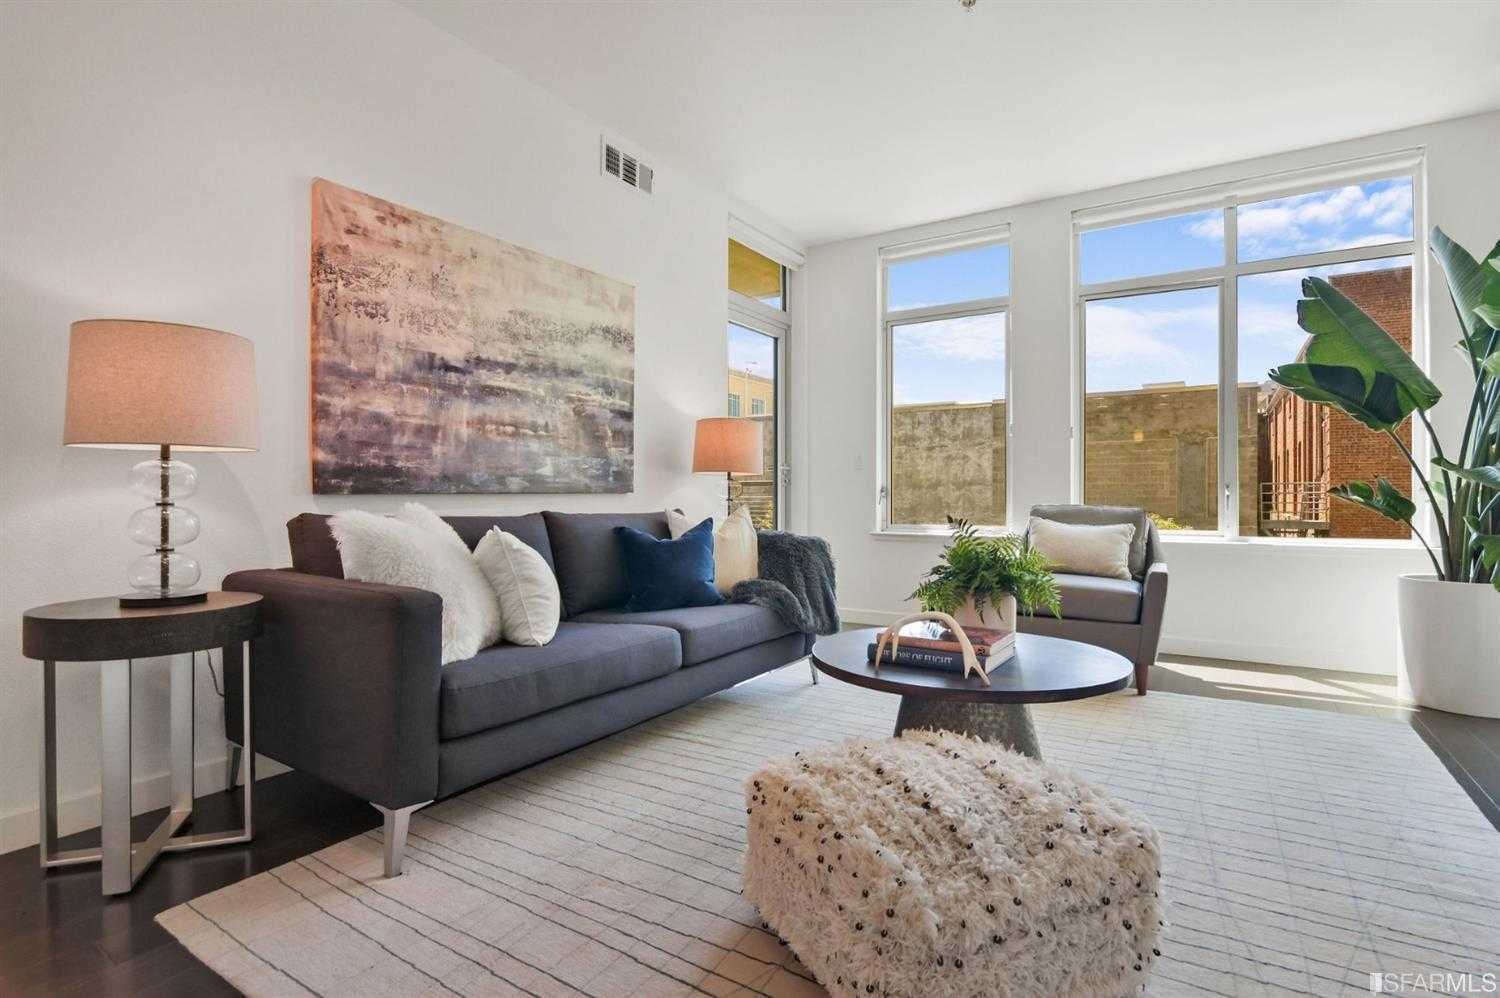 $1,329,000 - 2Br/2Ba -  for Sale in San Francisco